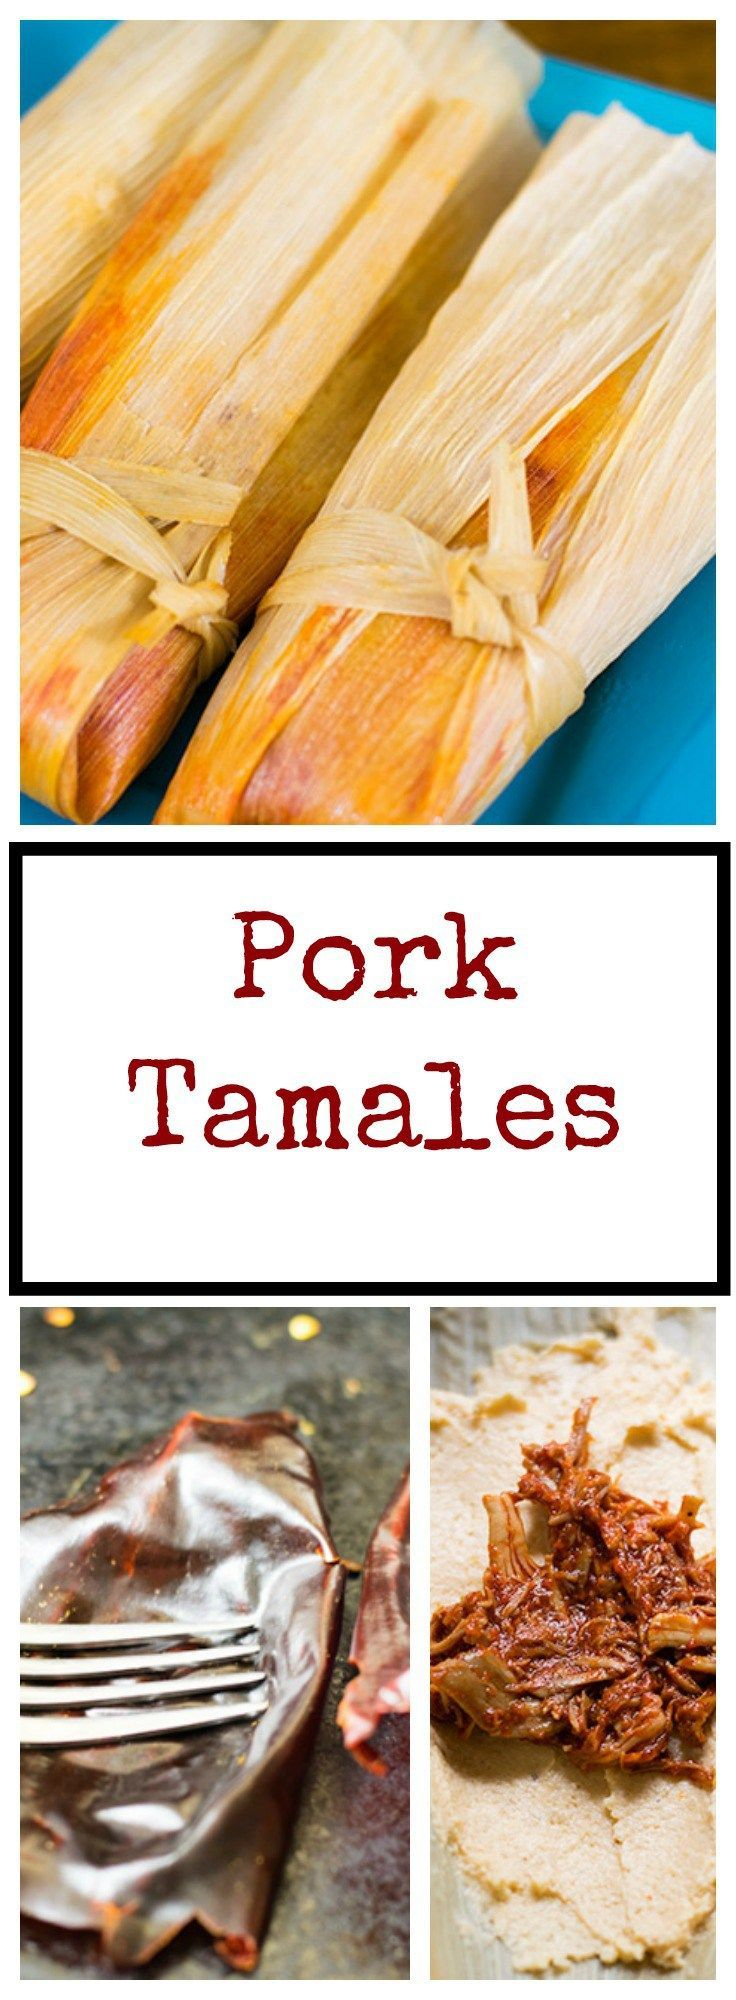 Authentic and filling Mexican pork tamales. You will not regret making these! They are easy to make because the process is spread over two days so you won't feel rushed and stressed.